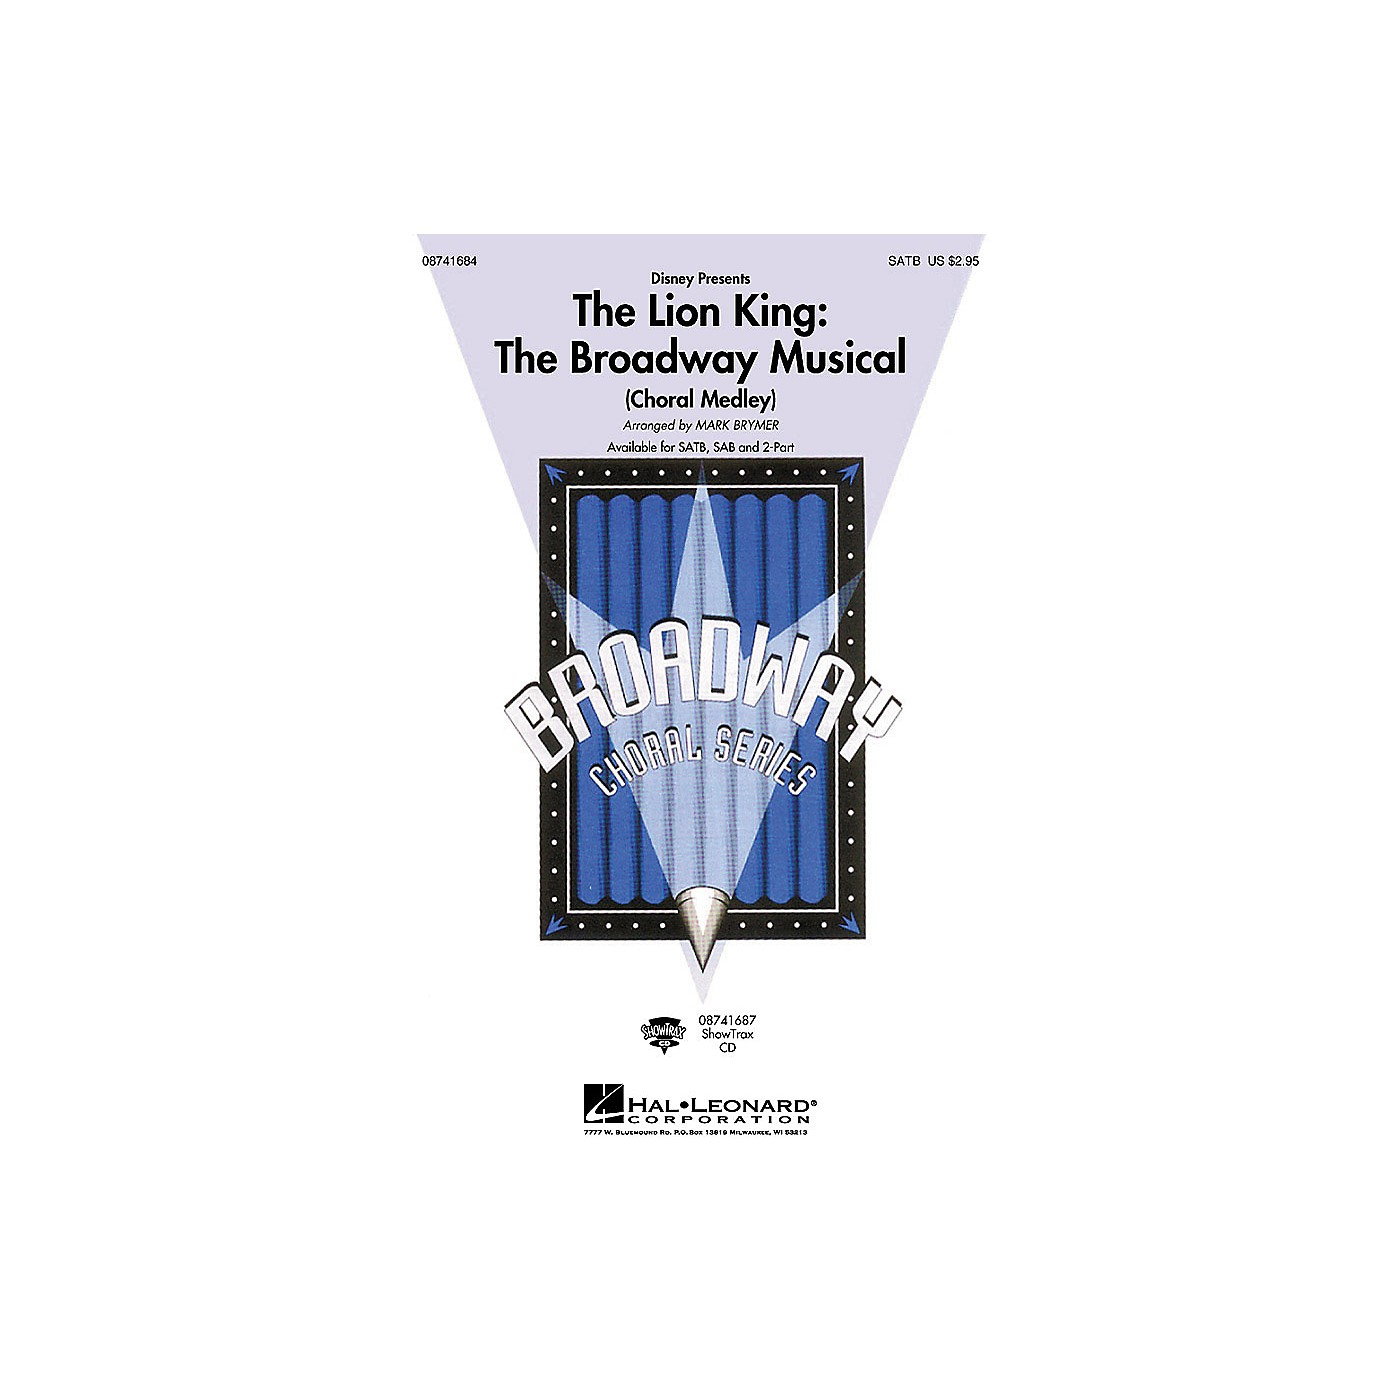 Hal Leonard The Lion King: The Broadway Musical (Choral Medley) (SATB) SATB by Elton John arranged by Mark Brymer thumbnail